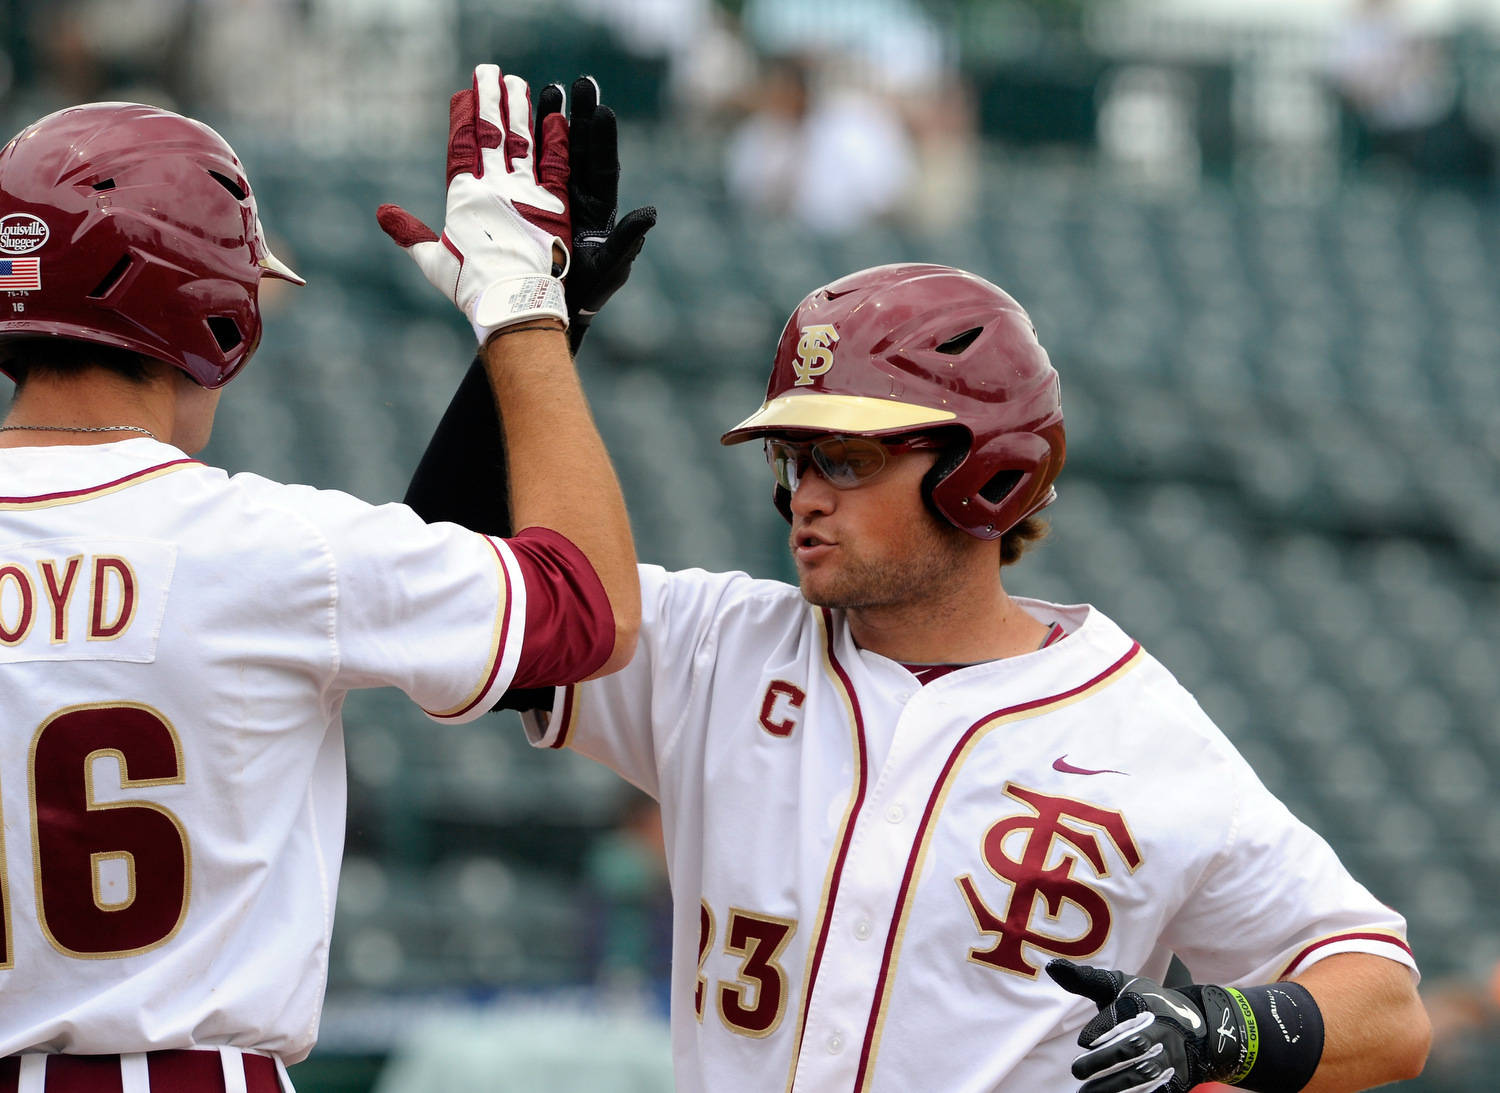 Florida State's James Ramsey (23) is congratulated his homerun against Georgia Tech by Jayce Boyd (16) during the ACC Baseball Championship May 23, 2012 in Greensboro, N.C. (Photo by Sara D. Davis/theACC.com)